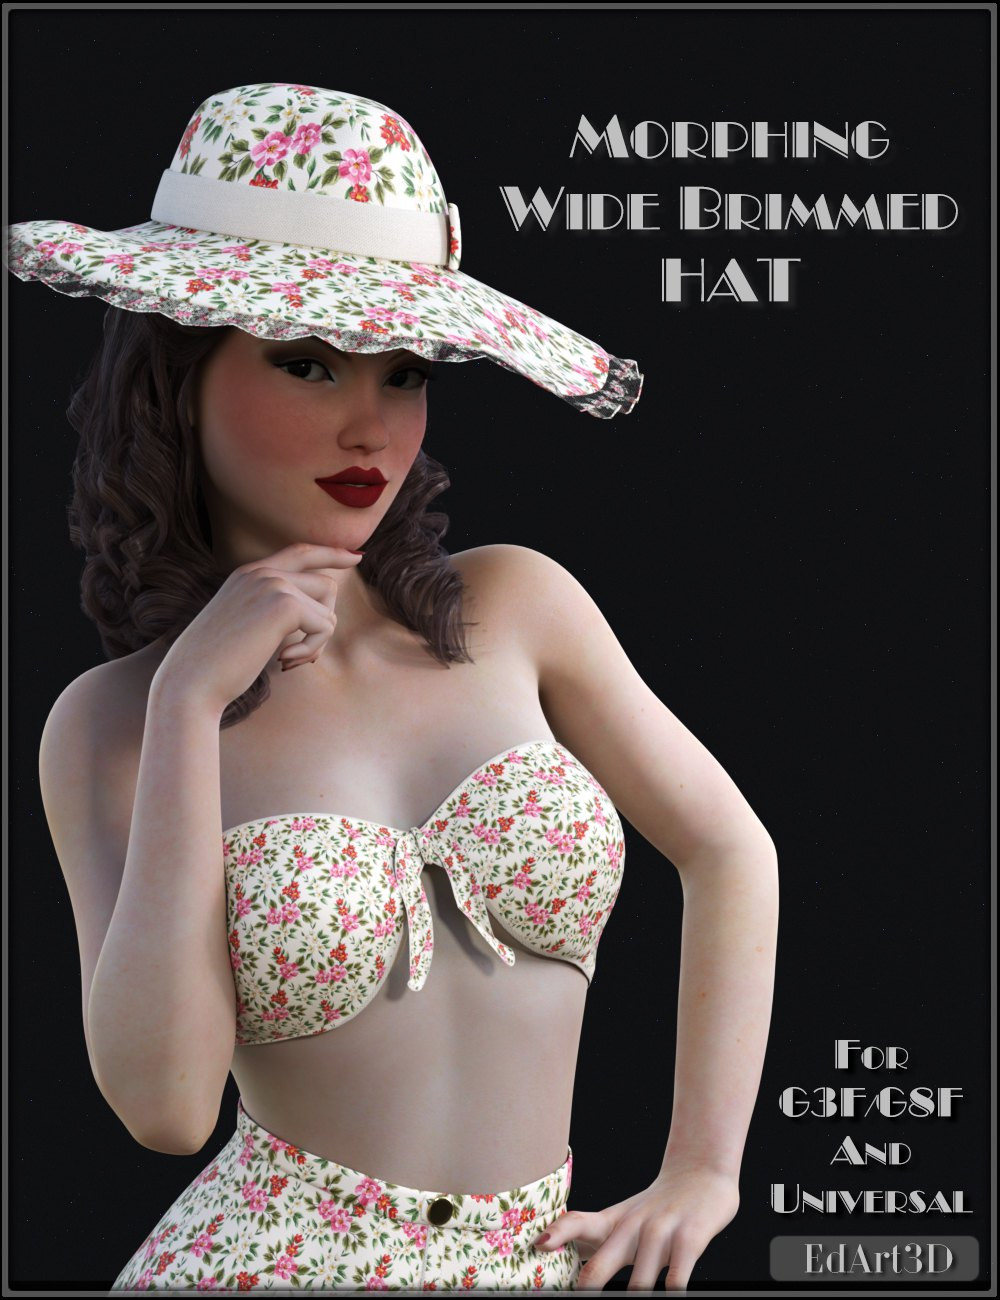 Morphing Wide Brimmed Hat for G3F/G8F and Universal Prop_DAZ3D下载站